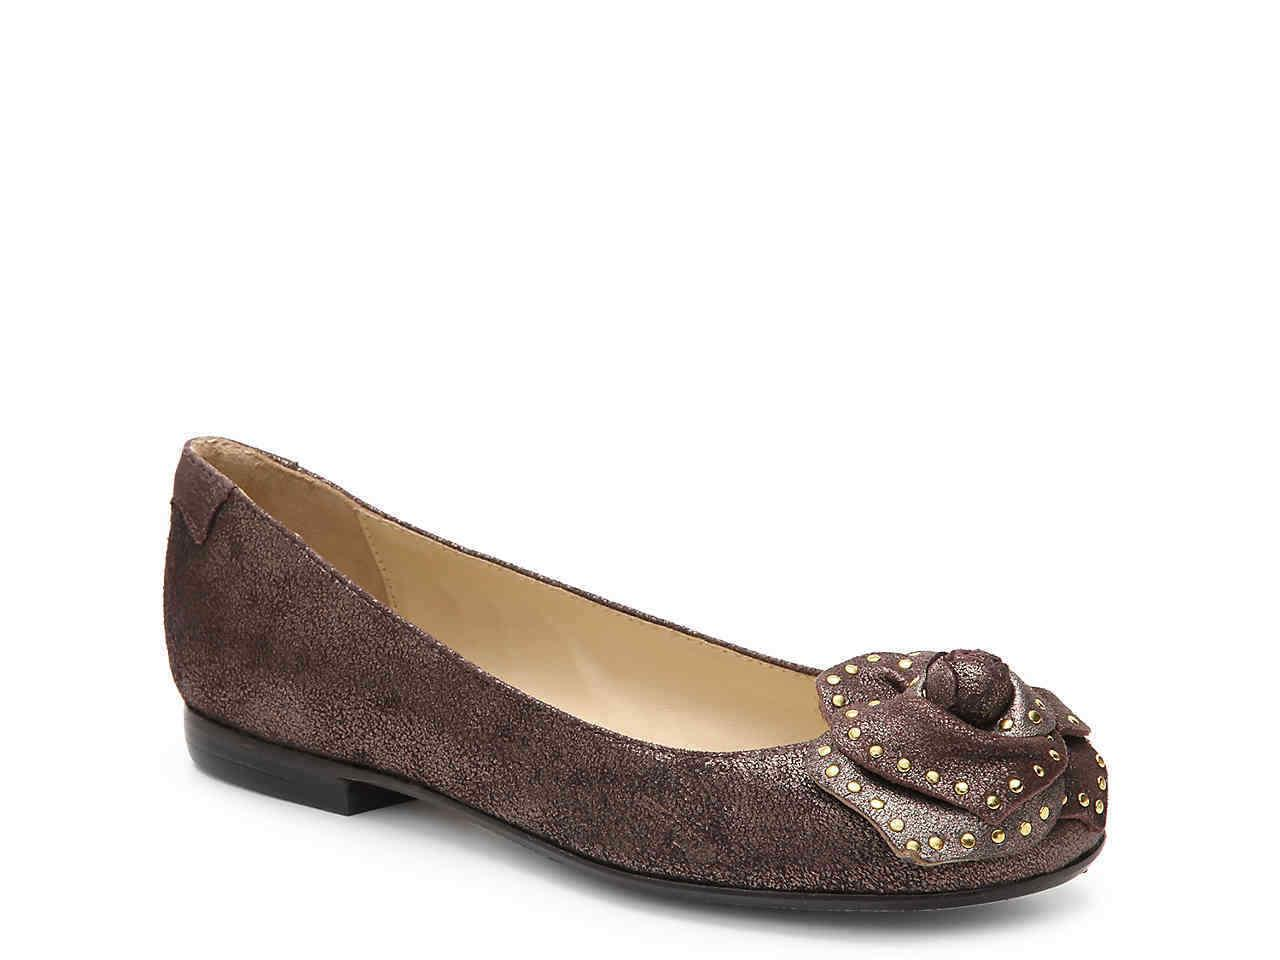 Taryn Rose Babylon Stud Rose Brown Shimmer Ballerina Shoes Flat Pumps 7.5